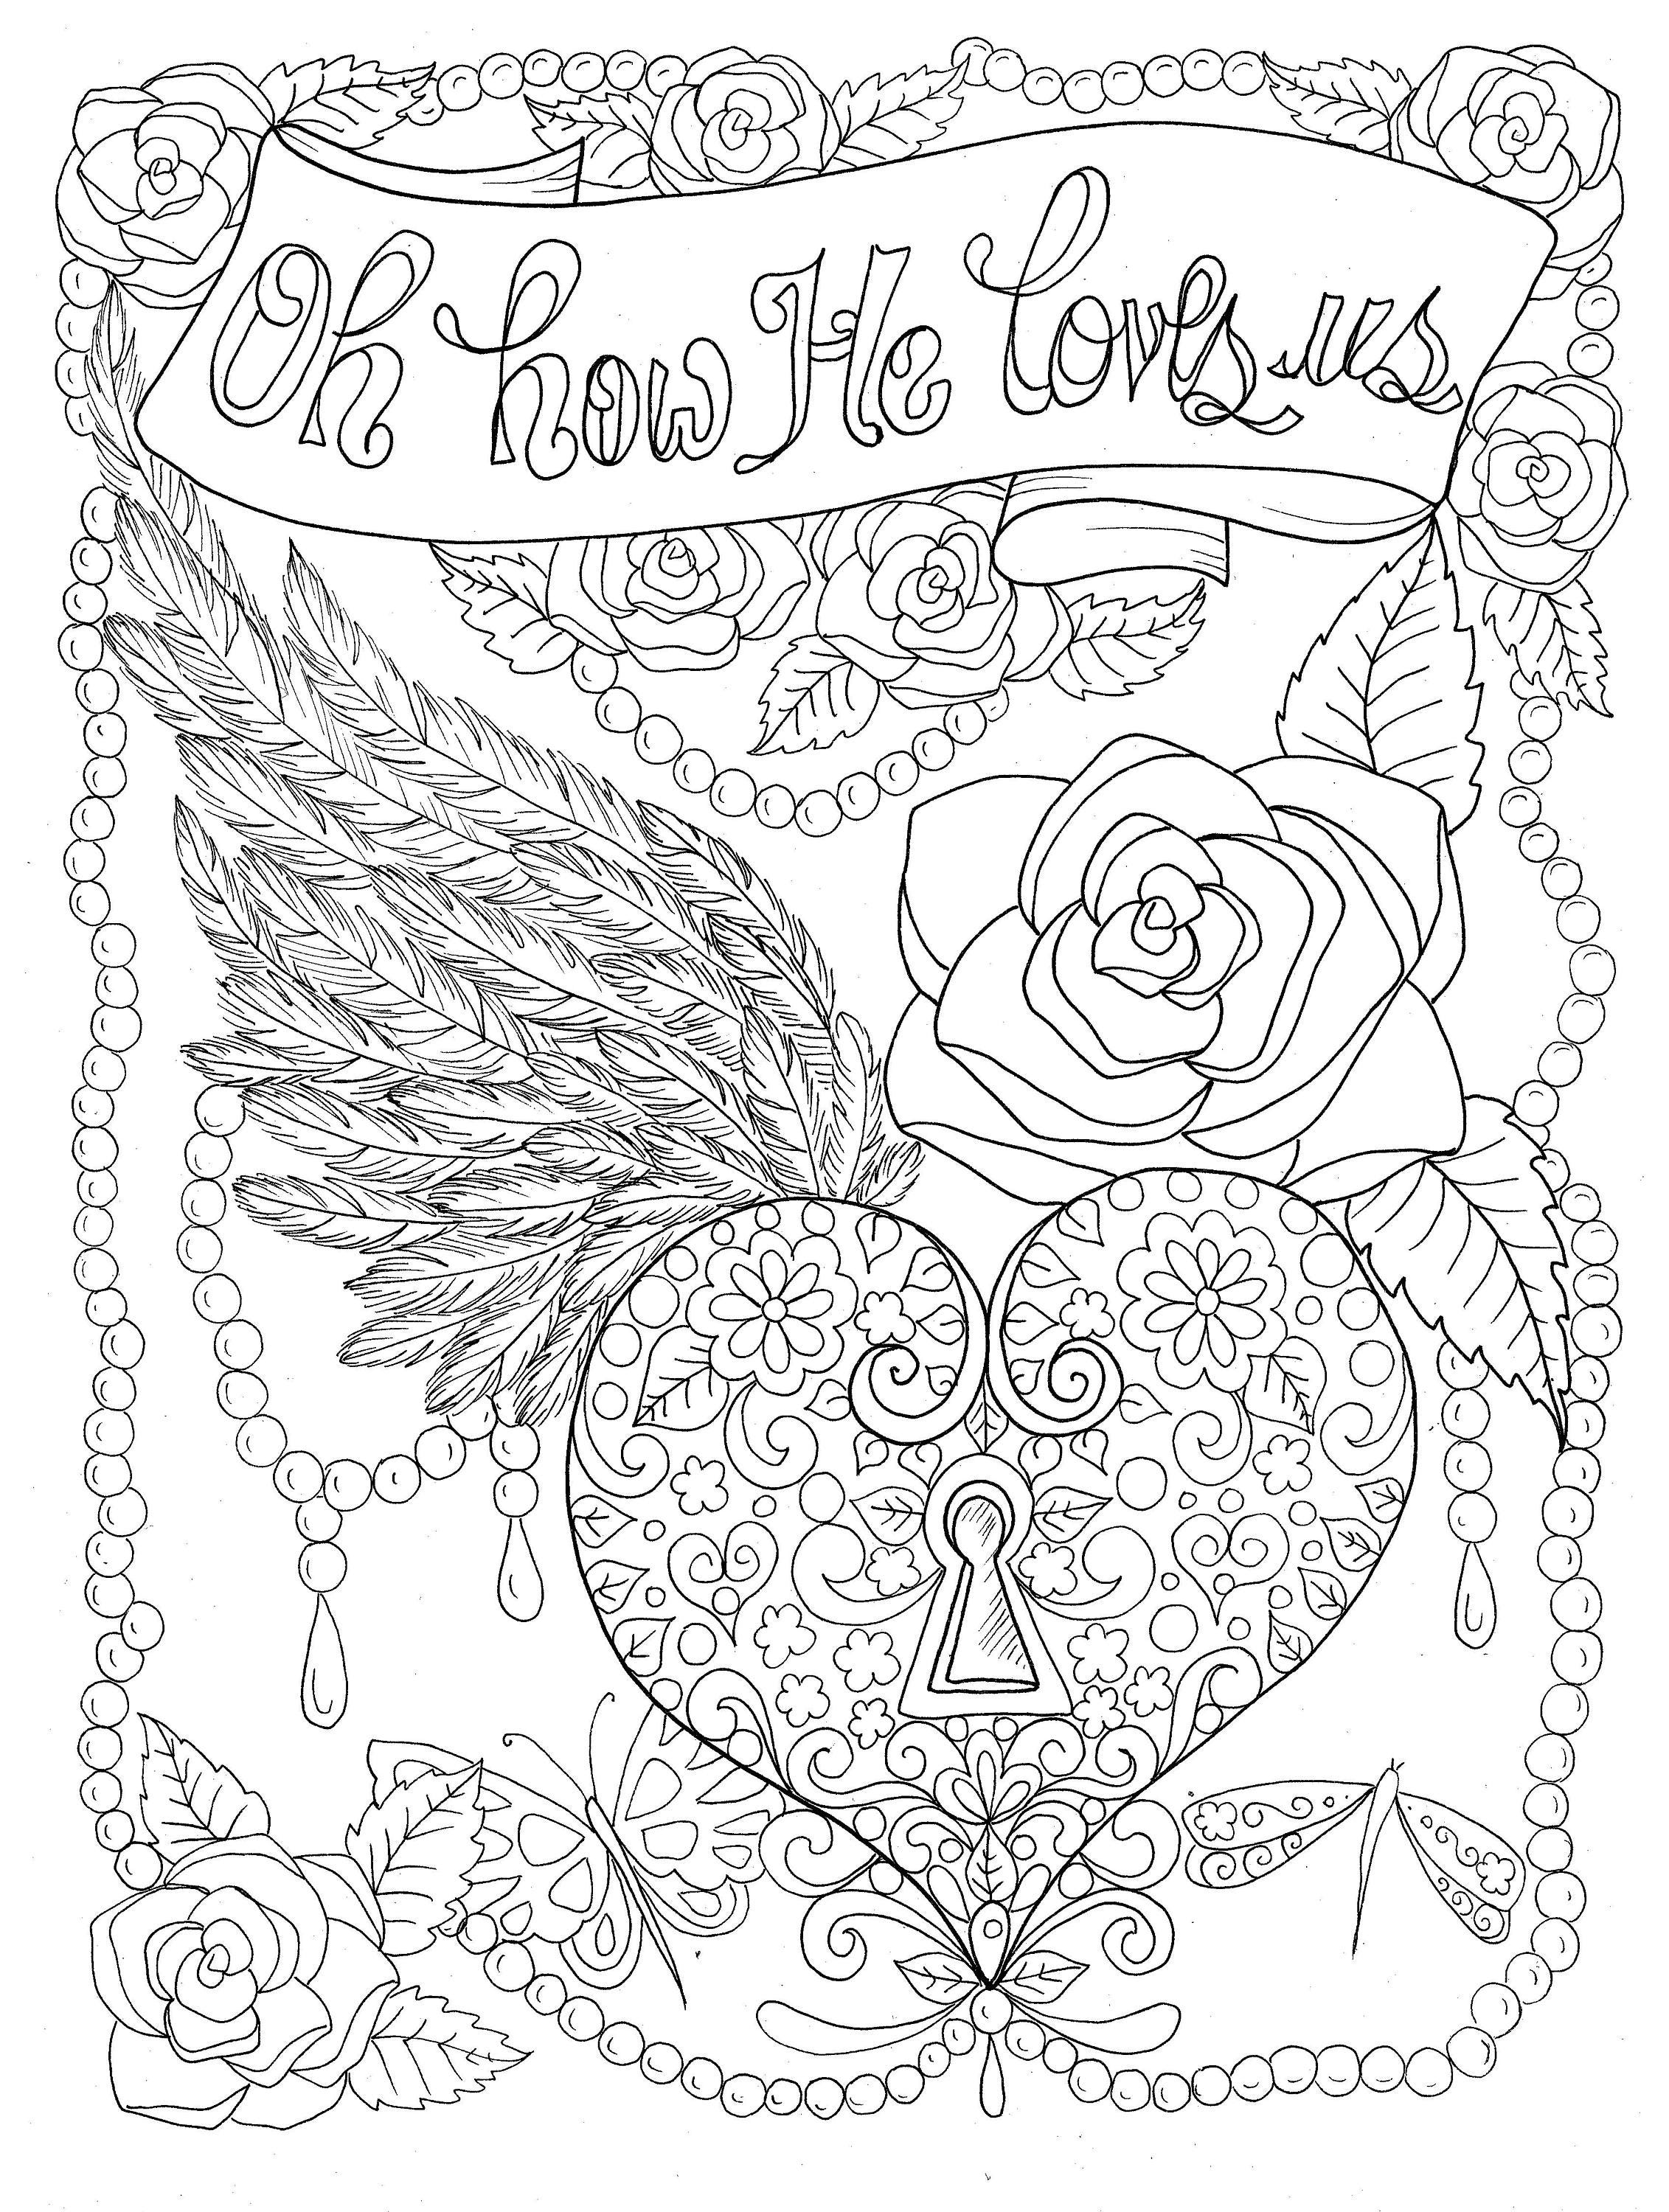 free christian coloring pages of a heart | Christian Worship coloring page Instant download/church ...